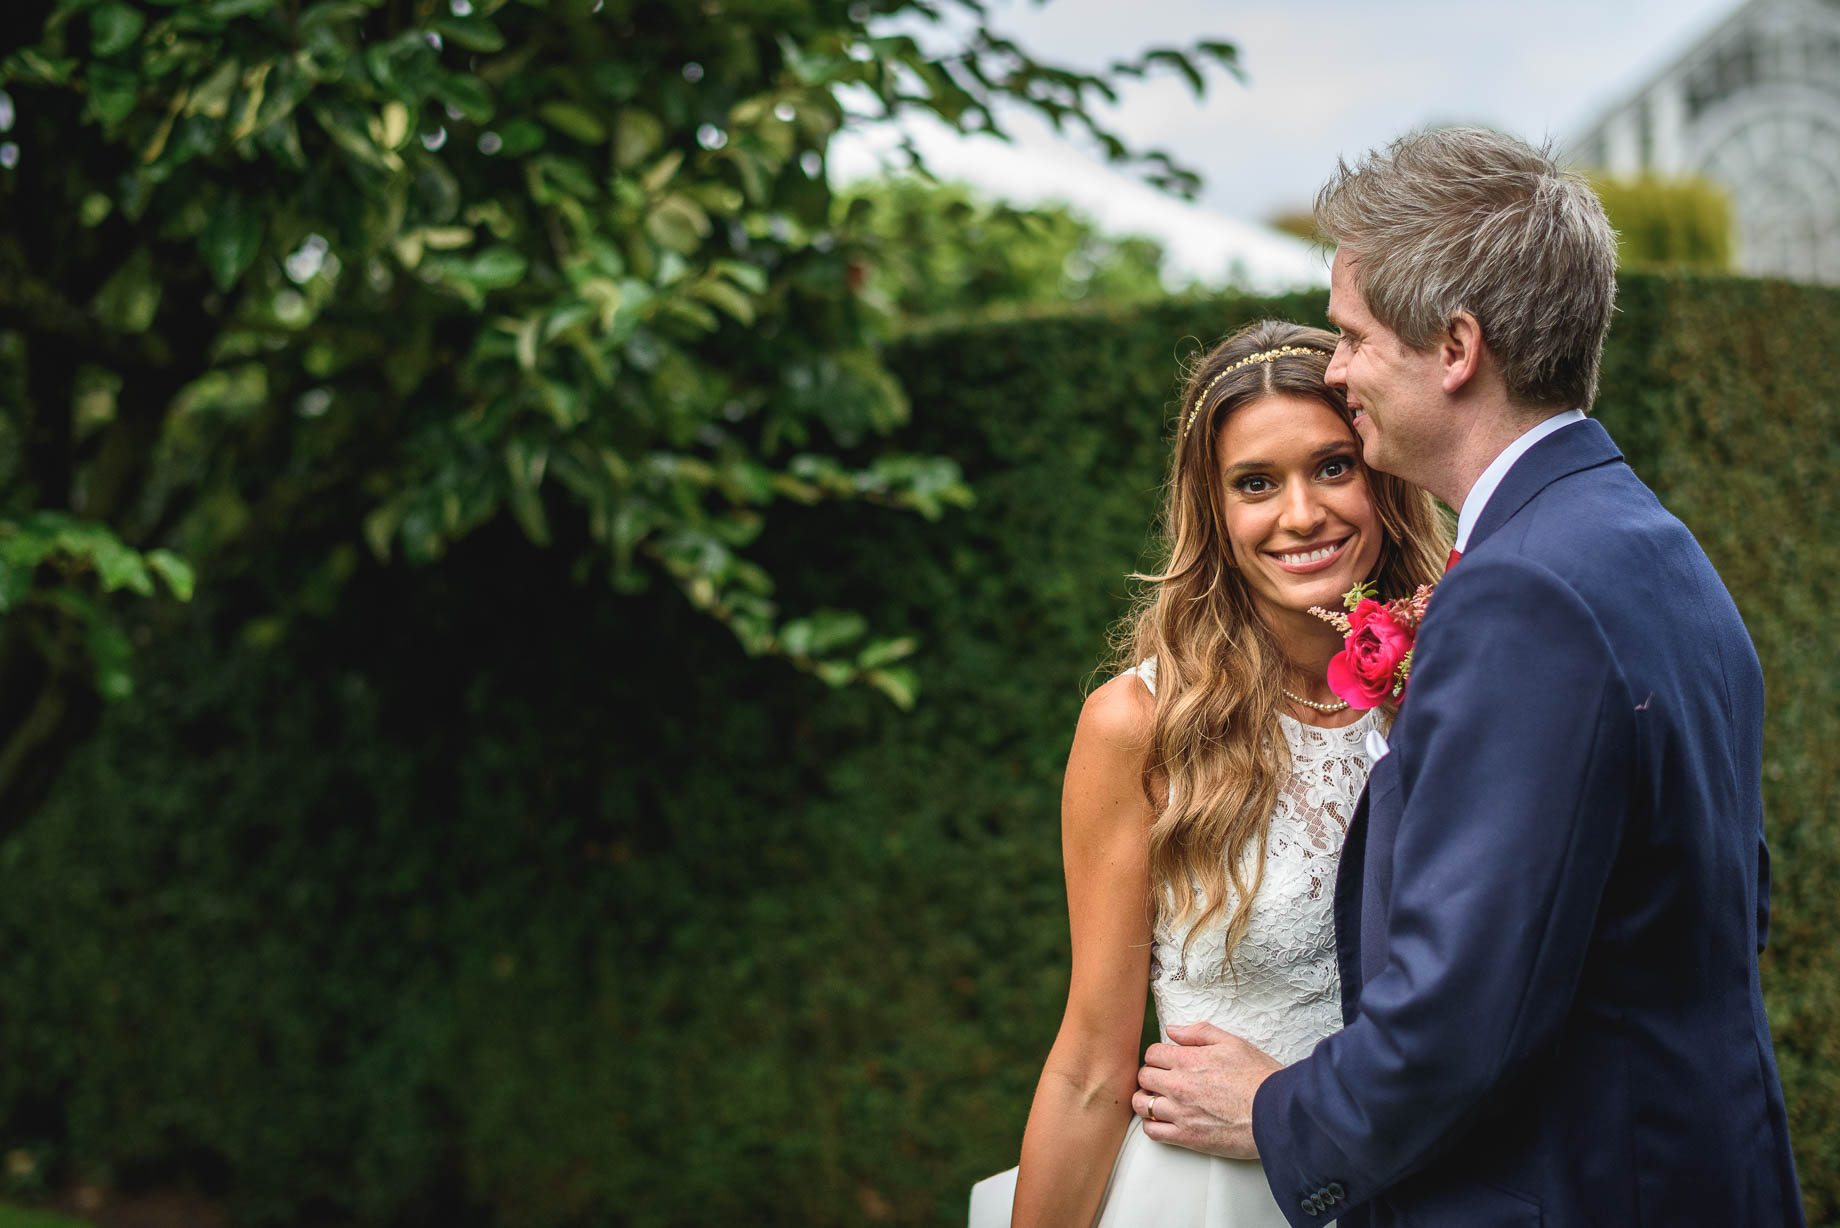 surrey-wedding-photography-guy-collier-photography-claire-and-tom-181-of-227